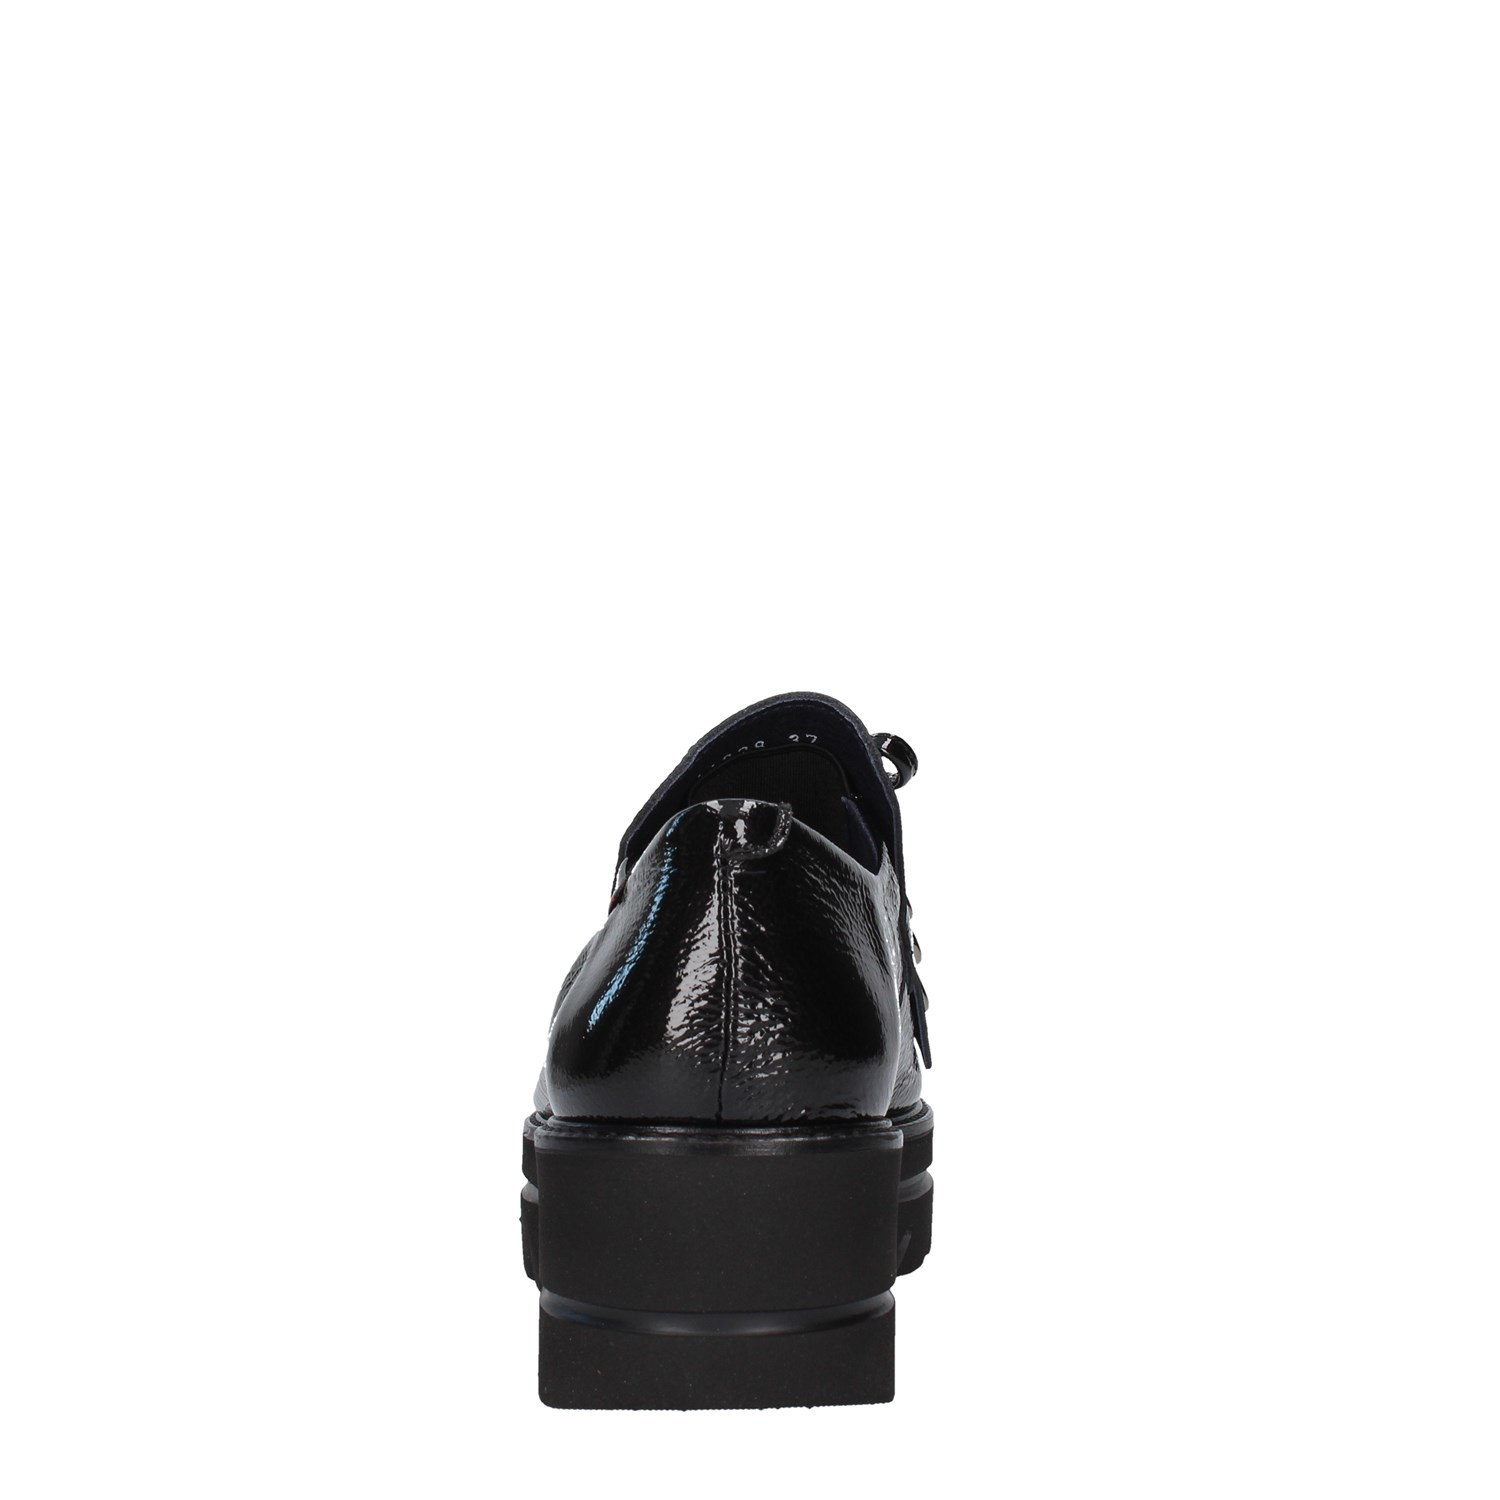 Callaghan Shoes Woman Loafers BLACK 14828